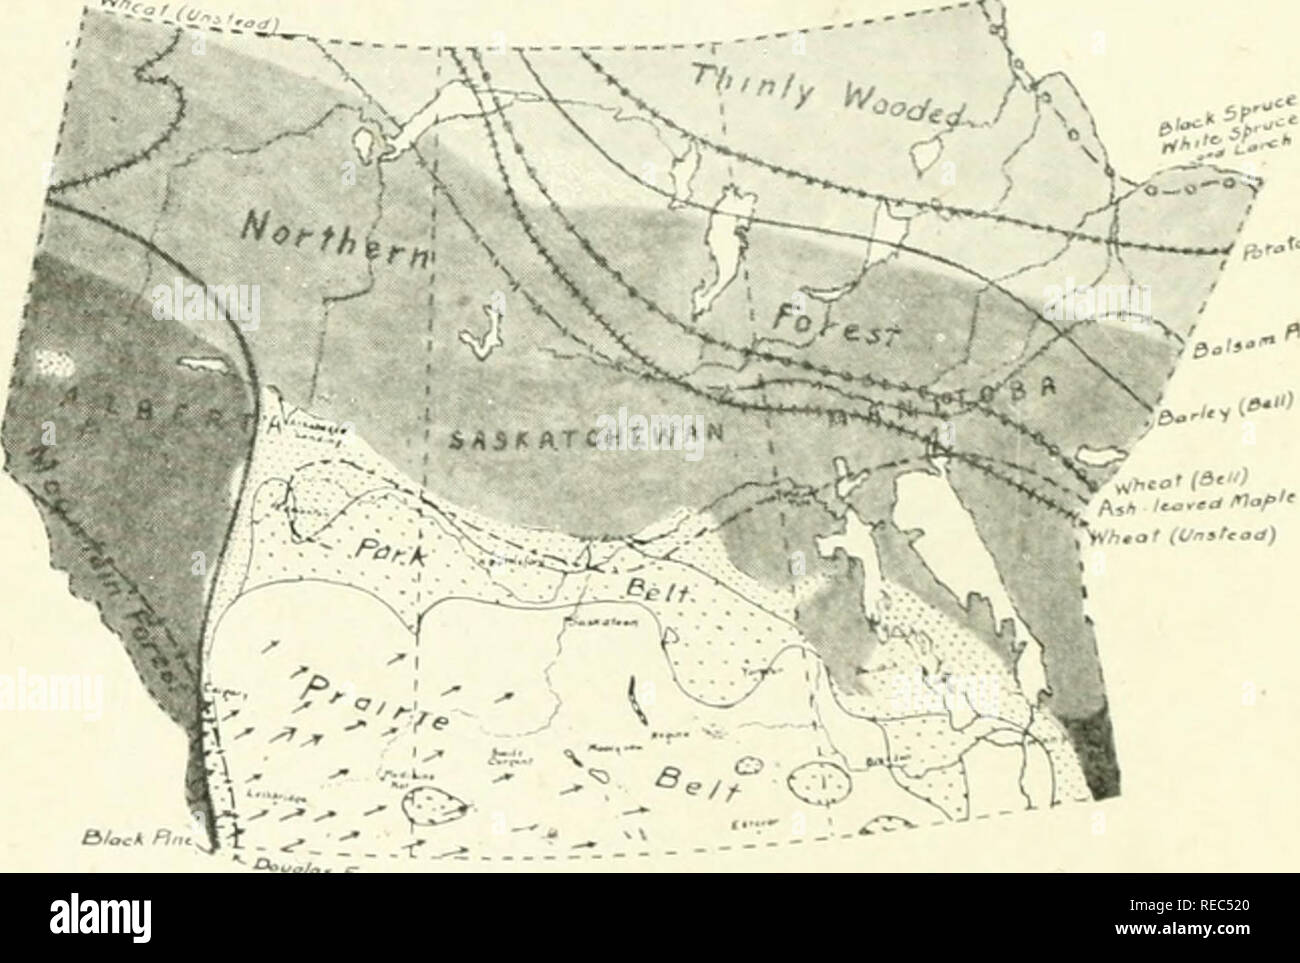 Map Of Western Canada Provinces.Dry Farming In Western Canada Canada Agriculture Canada Dry